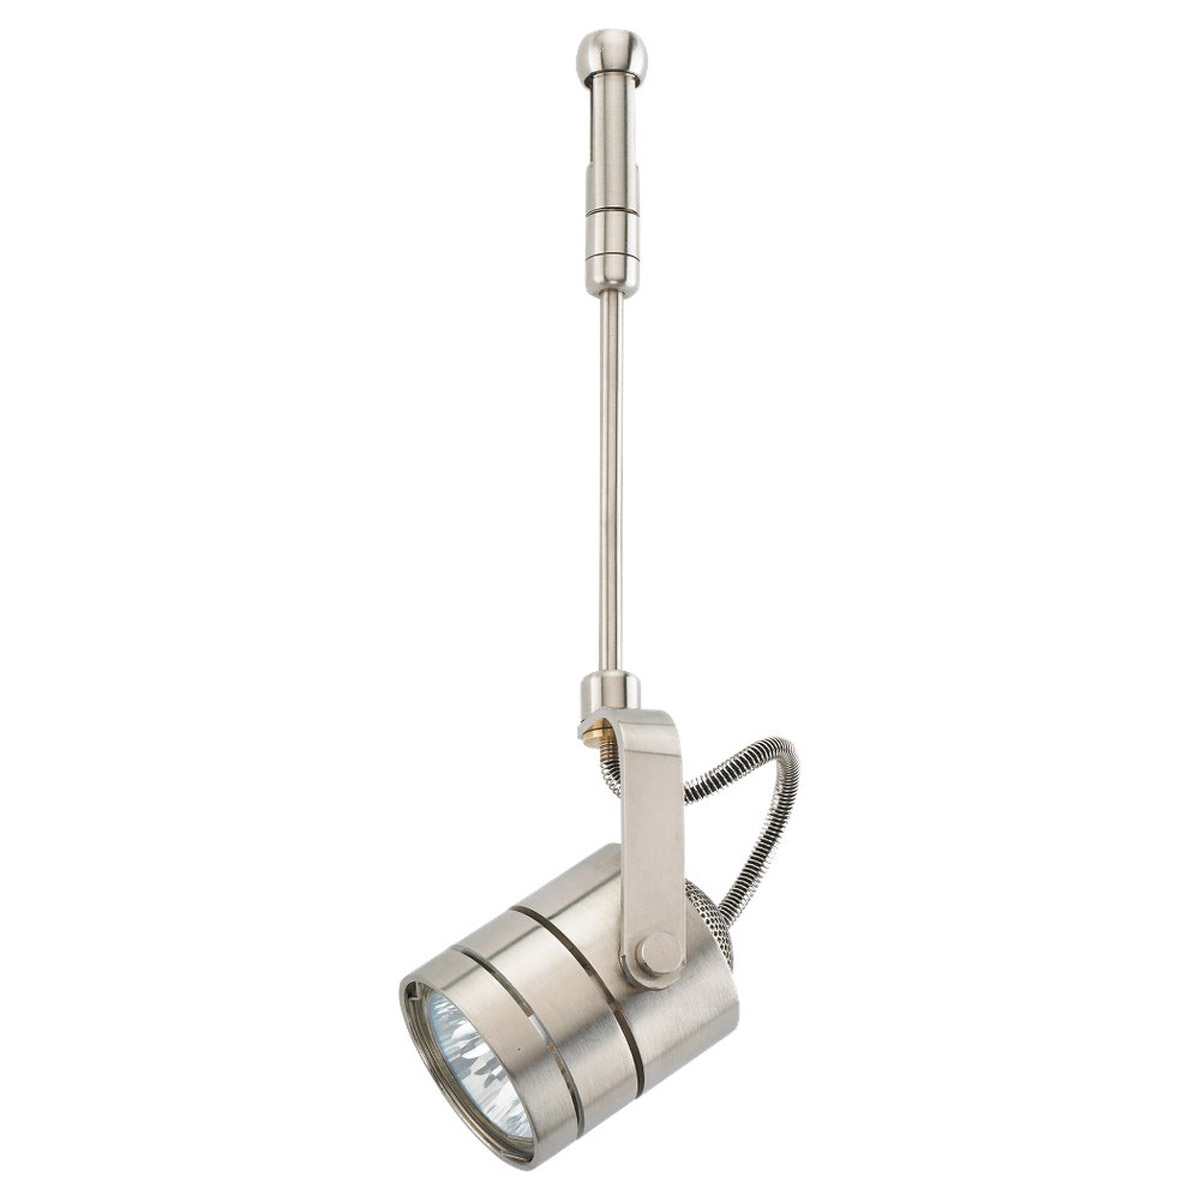 Sea Gull Lighting RTx Directional Roundback 6in Stem with Rail Adapter in Brushed Stainless 95155-98